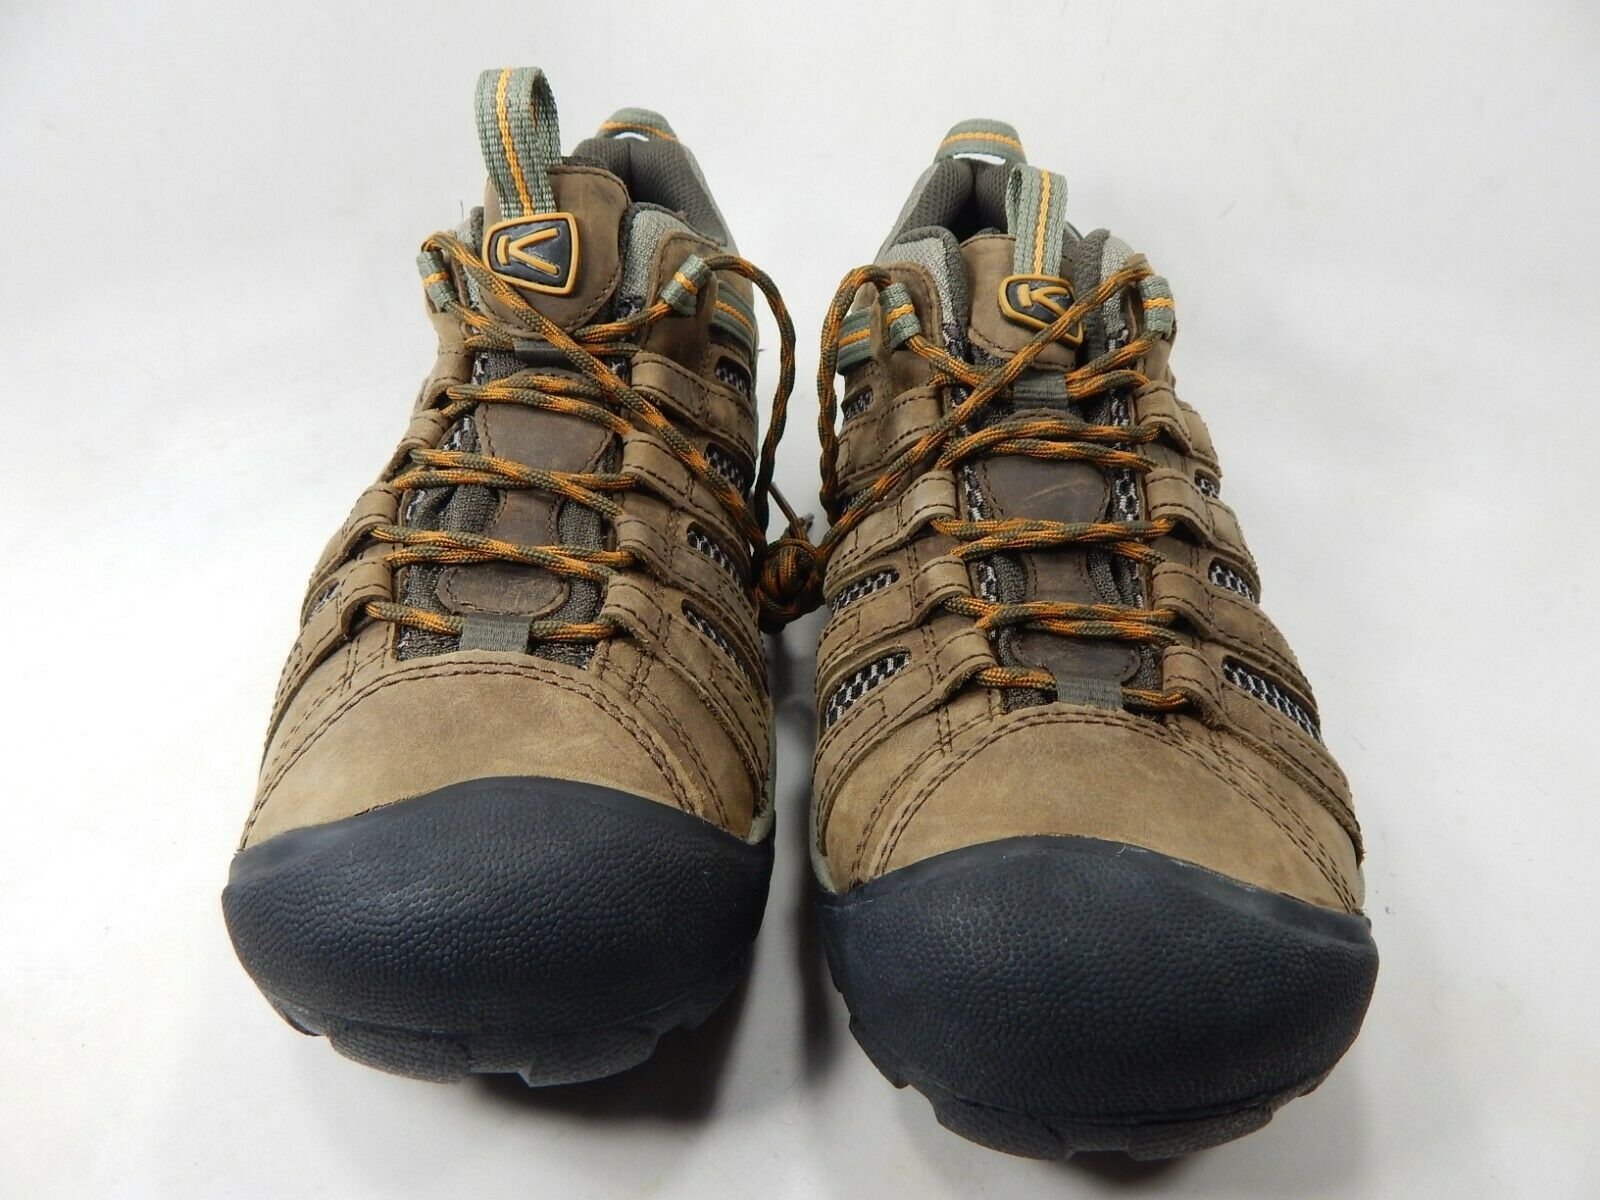 Keen Voyageur Low Top Size US 10.5 M (D) EU 44 Men's Trail Hiking Shoes Brown image 3